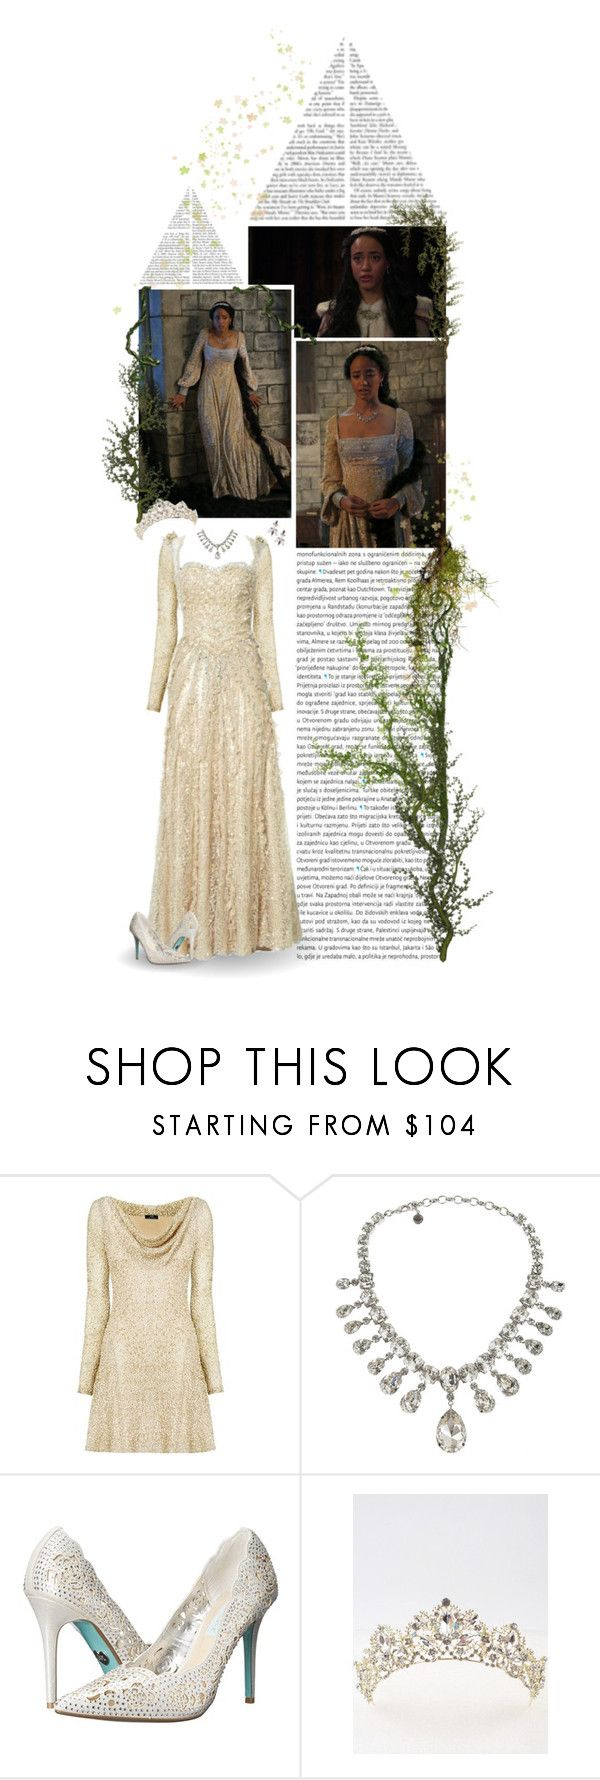 """Rapunzel - Once Upon a Time"" by supercalifragilistica ❤ liked on Polyvore featuring Once Upon a Time, Nicole Coste, Tom Binns, Oris, Betsey Johnson, Disney, Jeweliq, disney, rapunzel and onceuponatime"